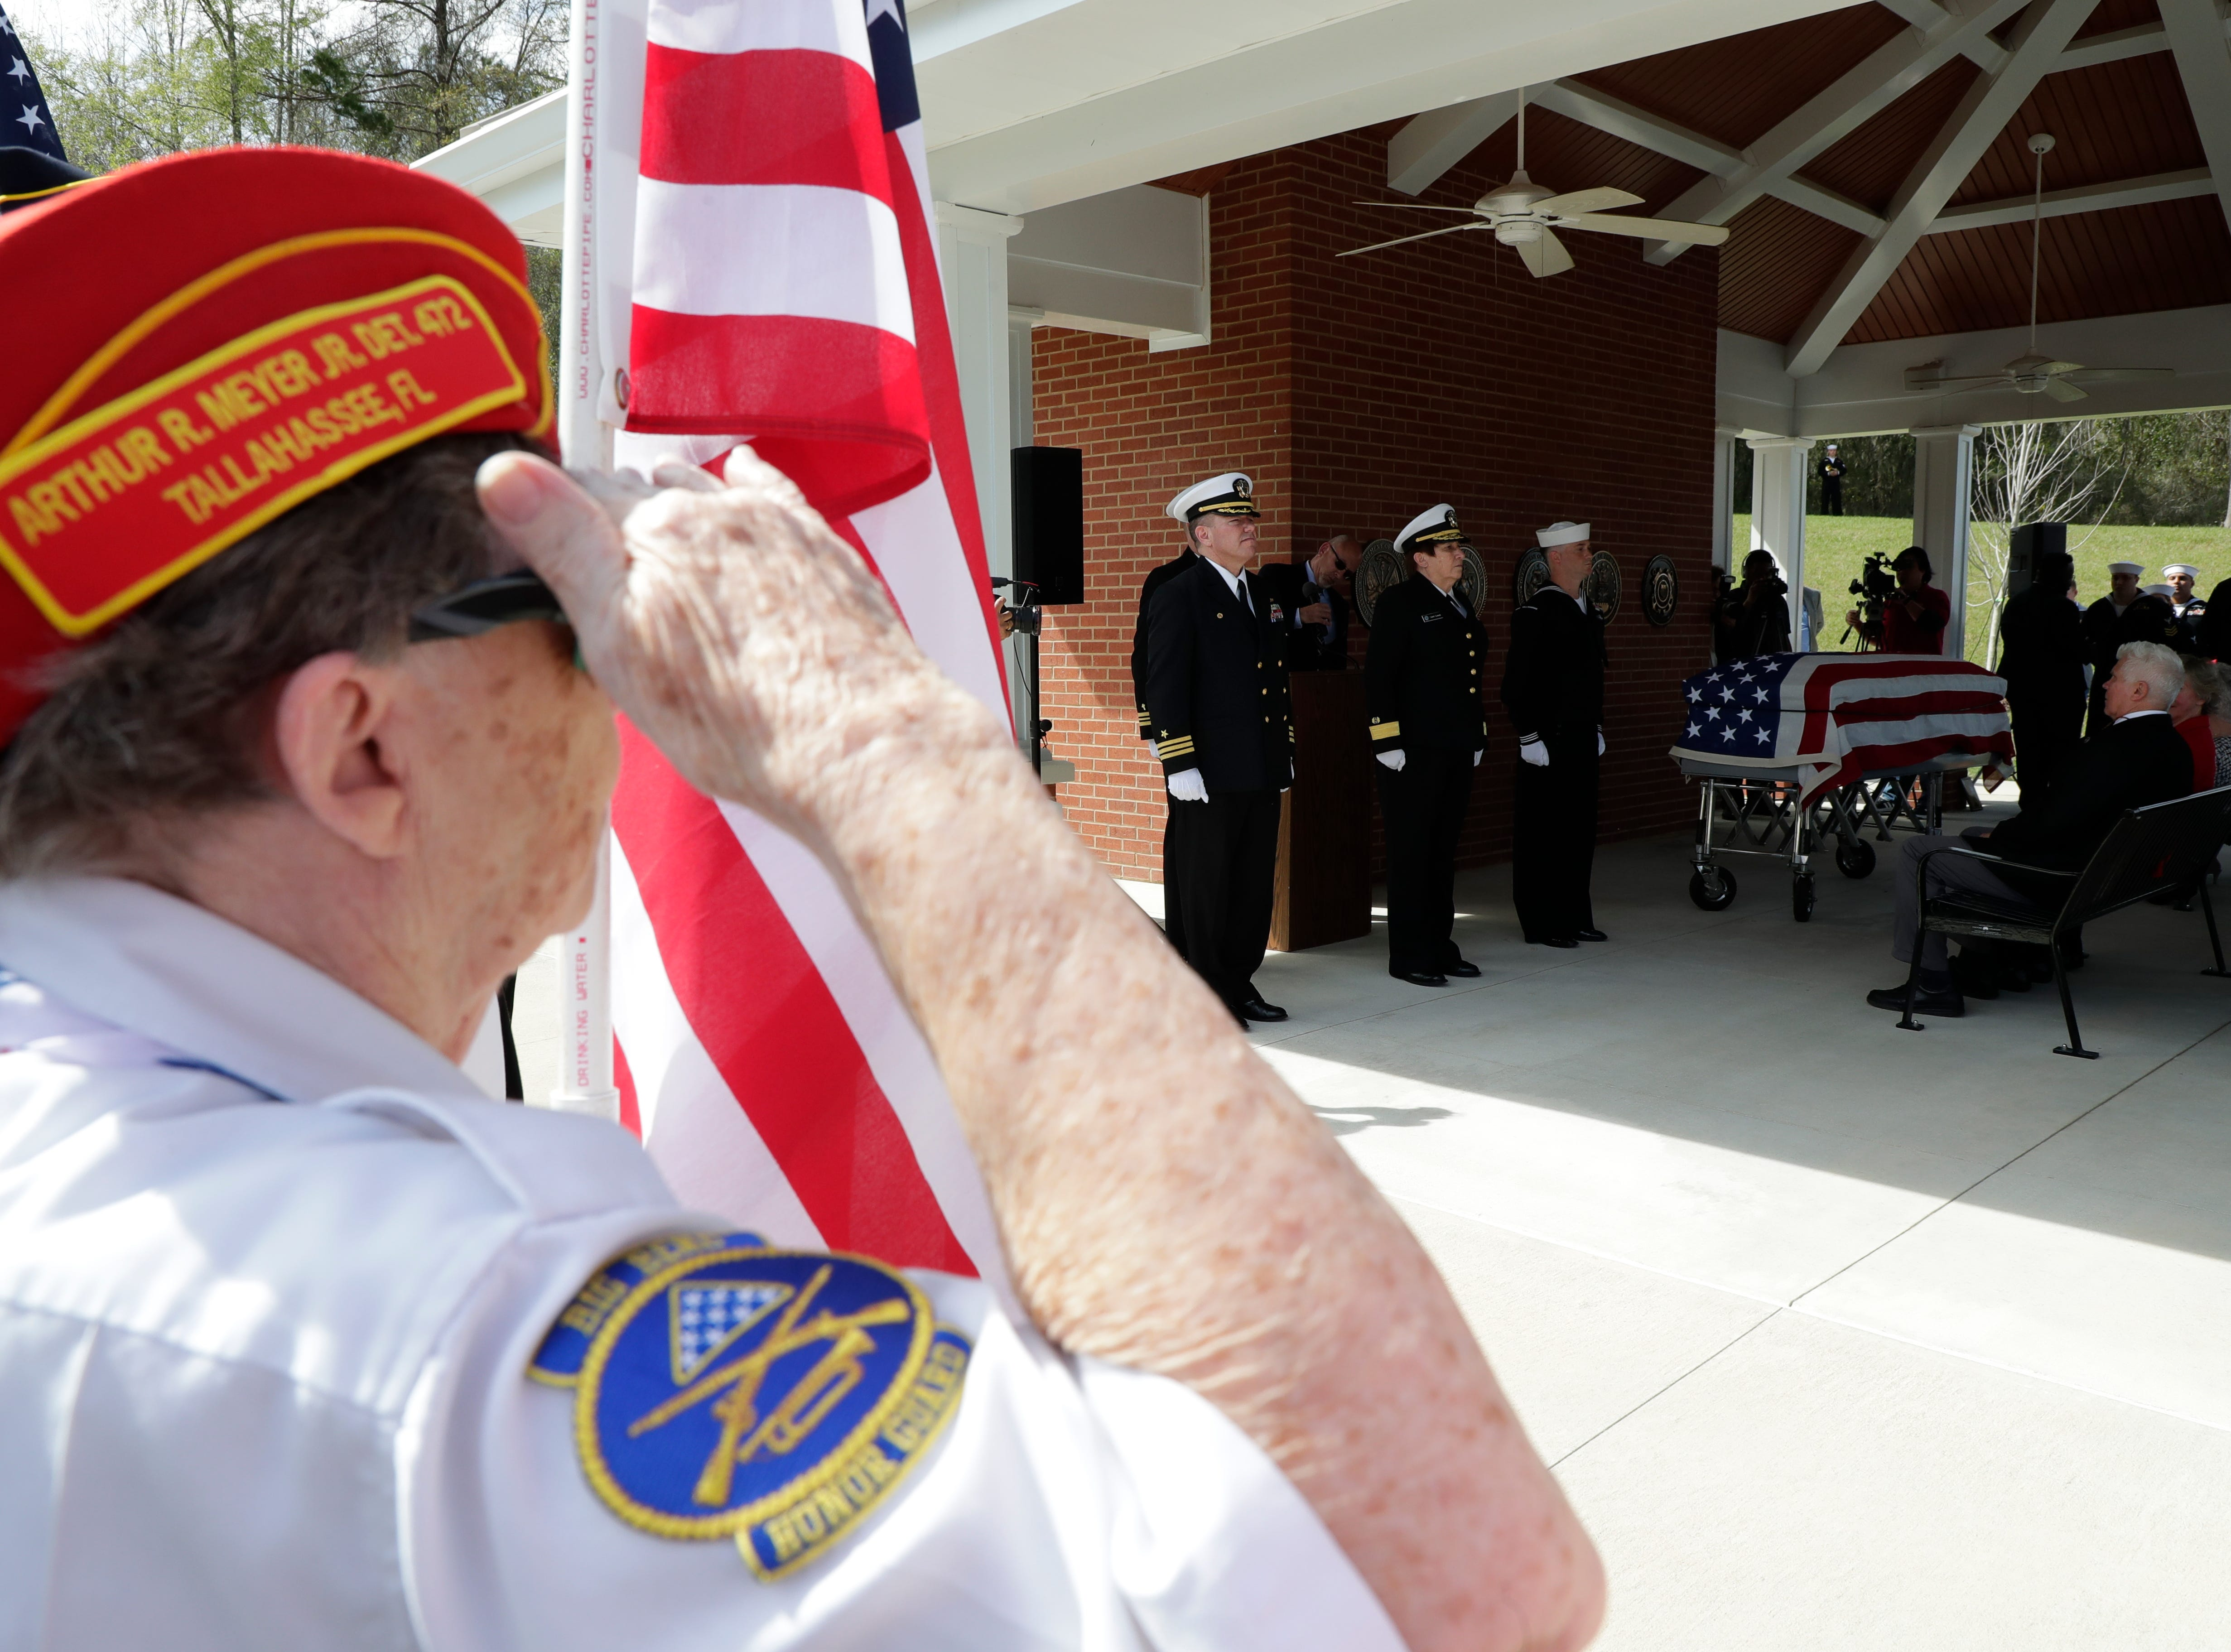 A member of the Big Bend Honor Guard holds an American flag as she salutes while the casket of Earl Baum, a sailor who was killed in Pearl Harbor, is placed for a funeral which was held at the Tallahassee National Cemetery Friday, March 8, 2019.